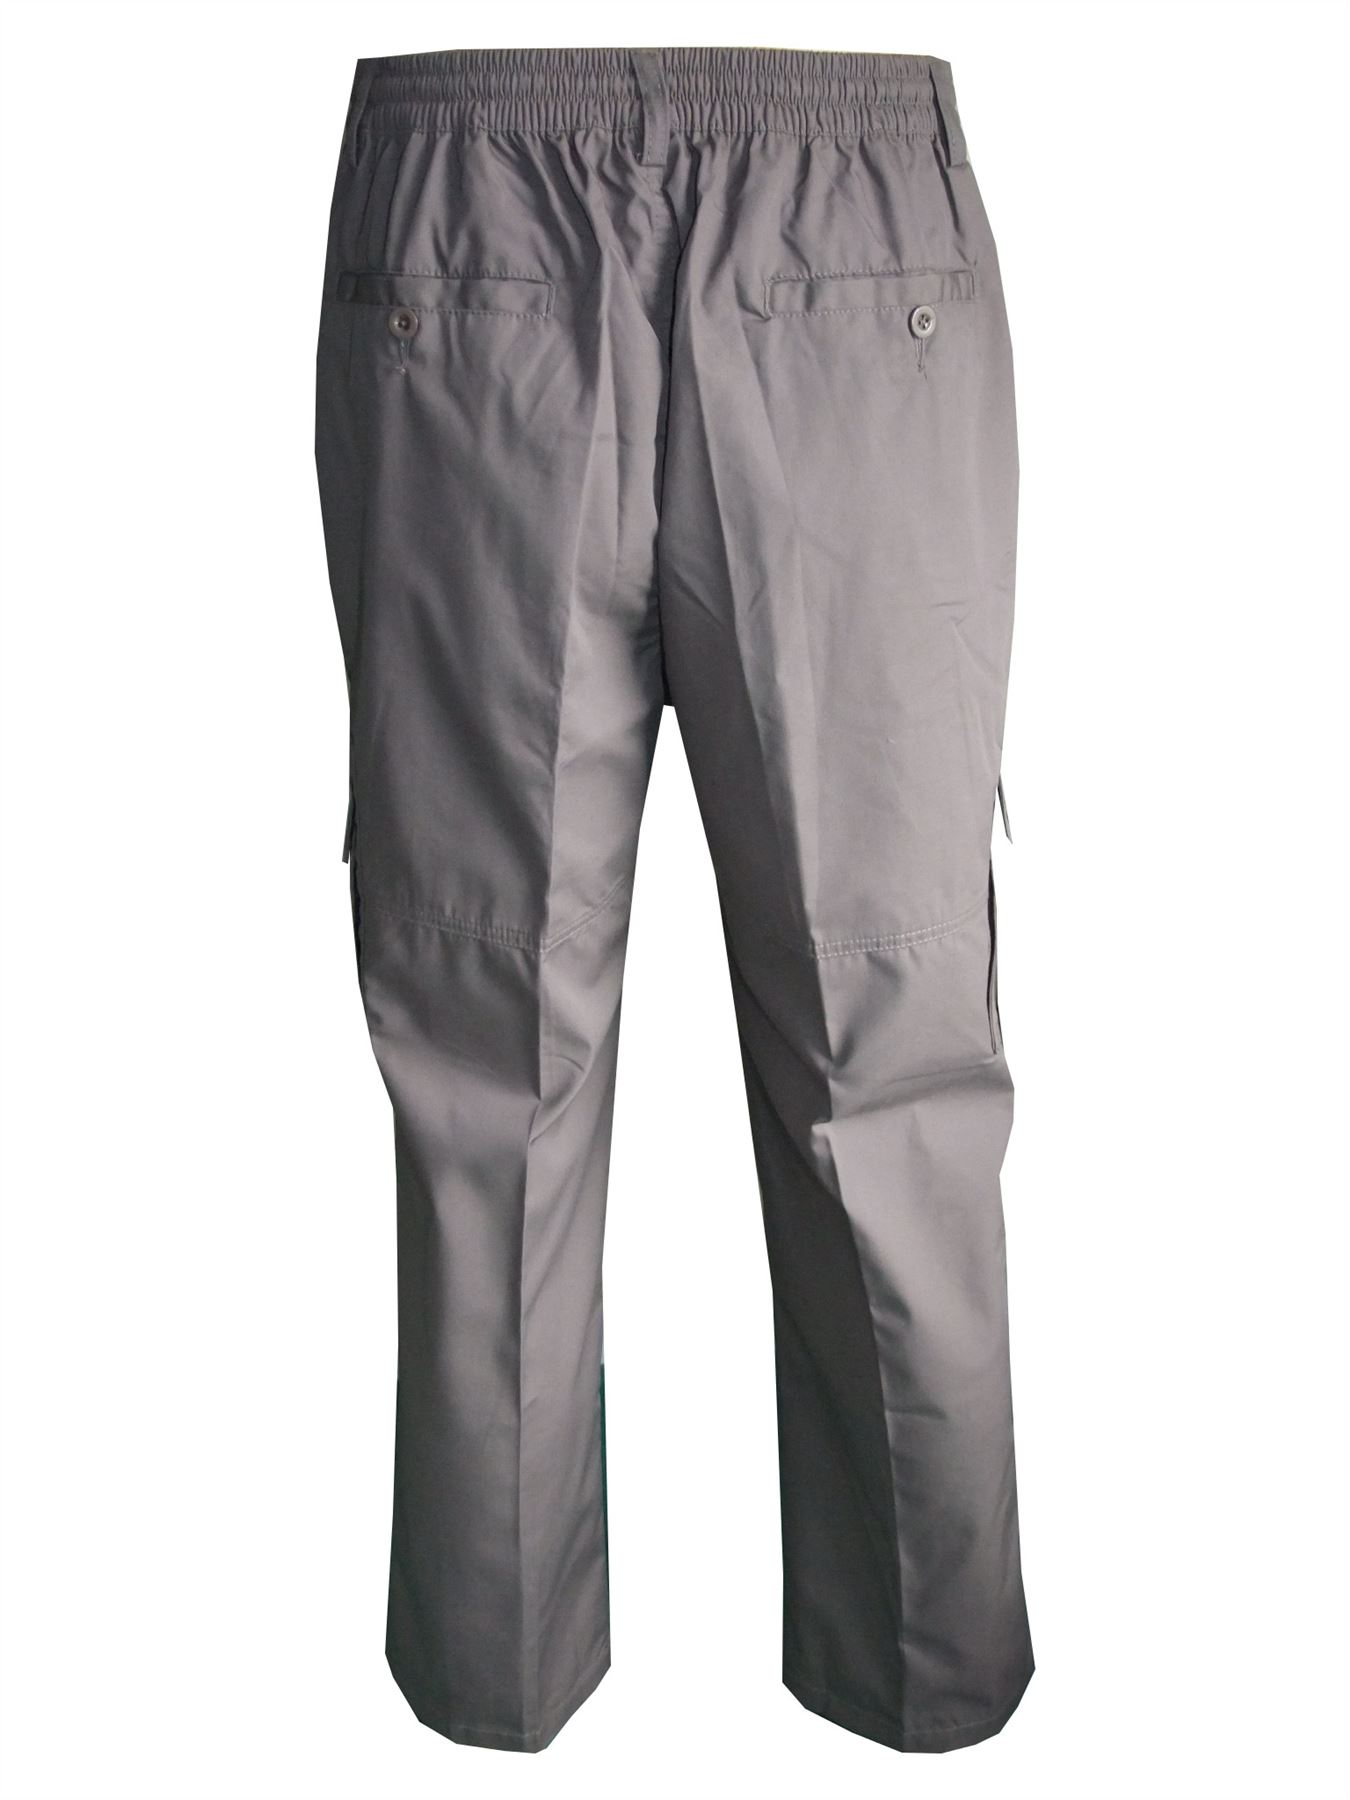 Men-Straight-Trousers-Cargo-Combat-Cotton-Elasticated-Zip-Fly-Casual-Pants-M-3XL thumbnail 12